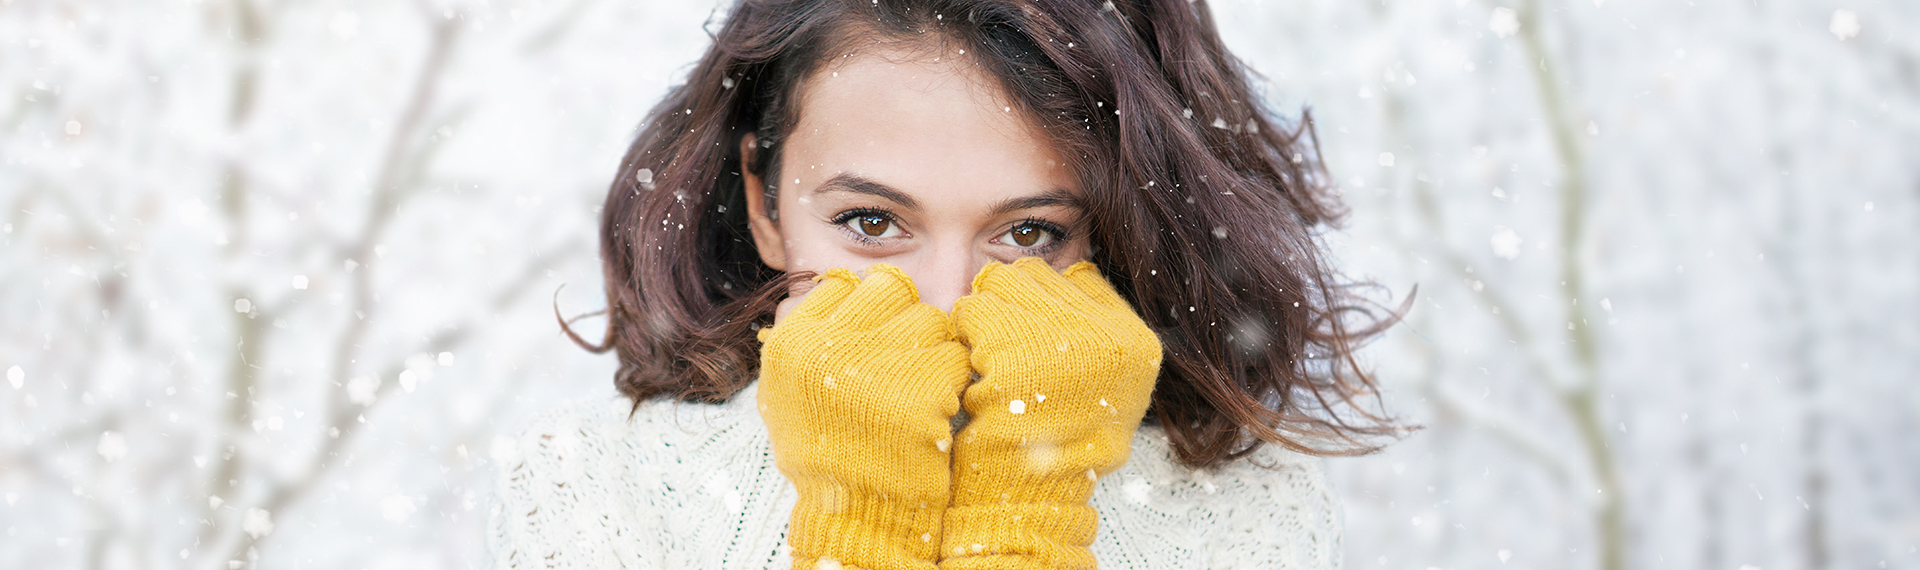 Here's All You Need To Know About Your Winter Skin Care